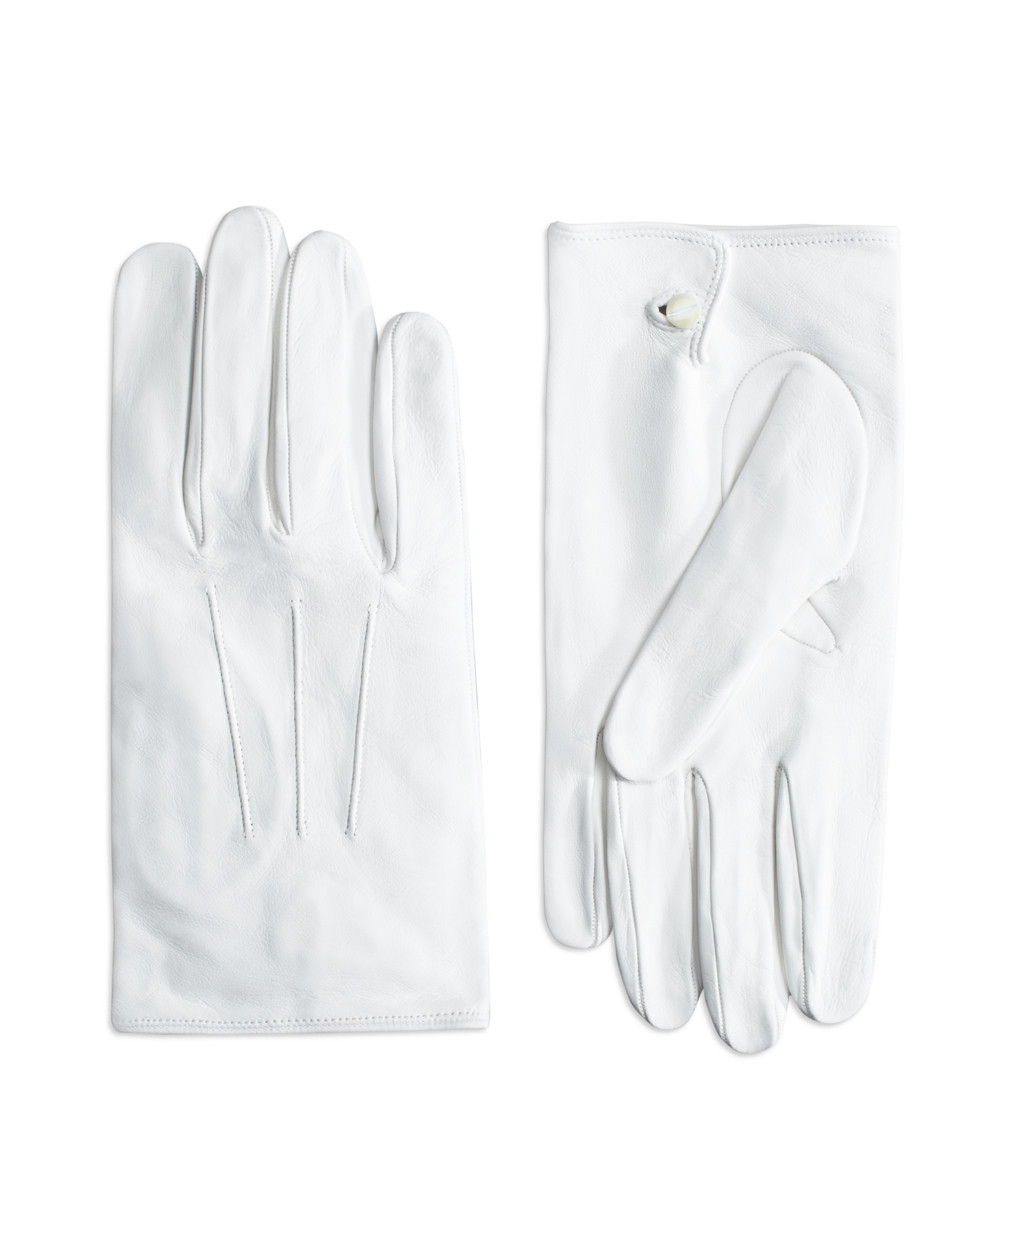 Men's Steampunk Clothing, Costumes, Fashion Mens White Formal Gloves $148.00 AT vintagedancer.com